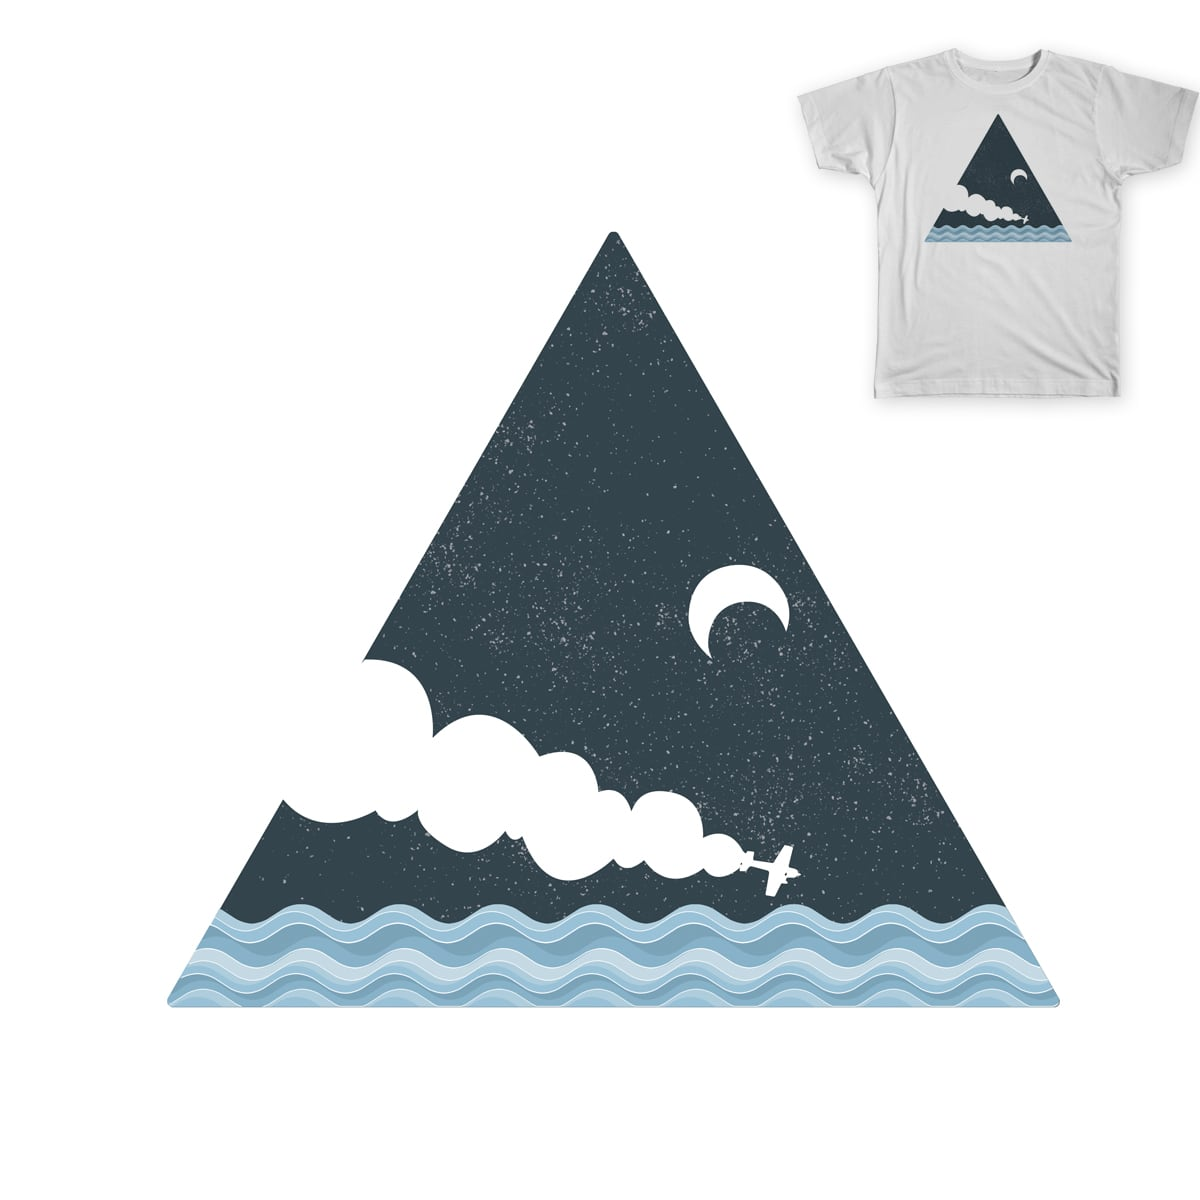 The Bermuda Triangle by TelecasterWood on Threadless